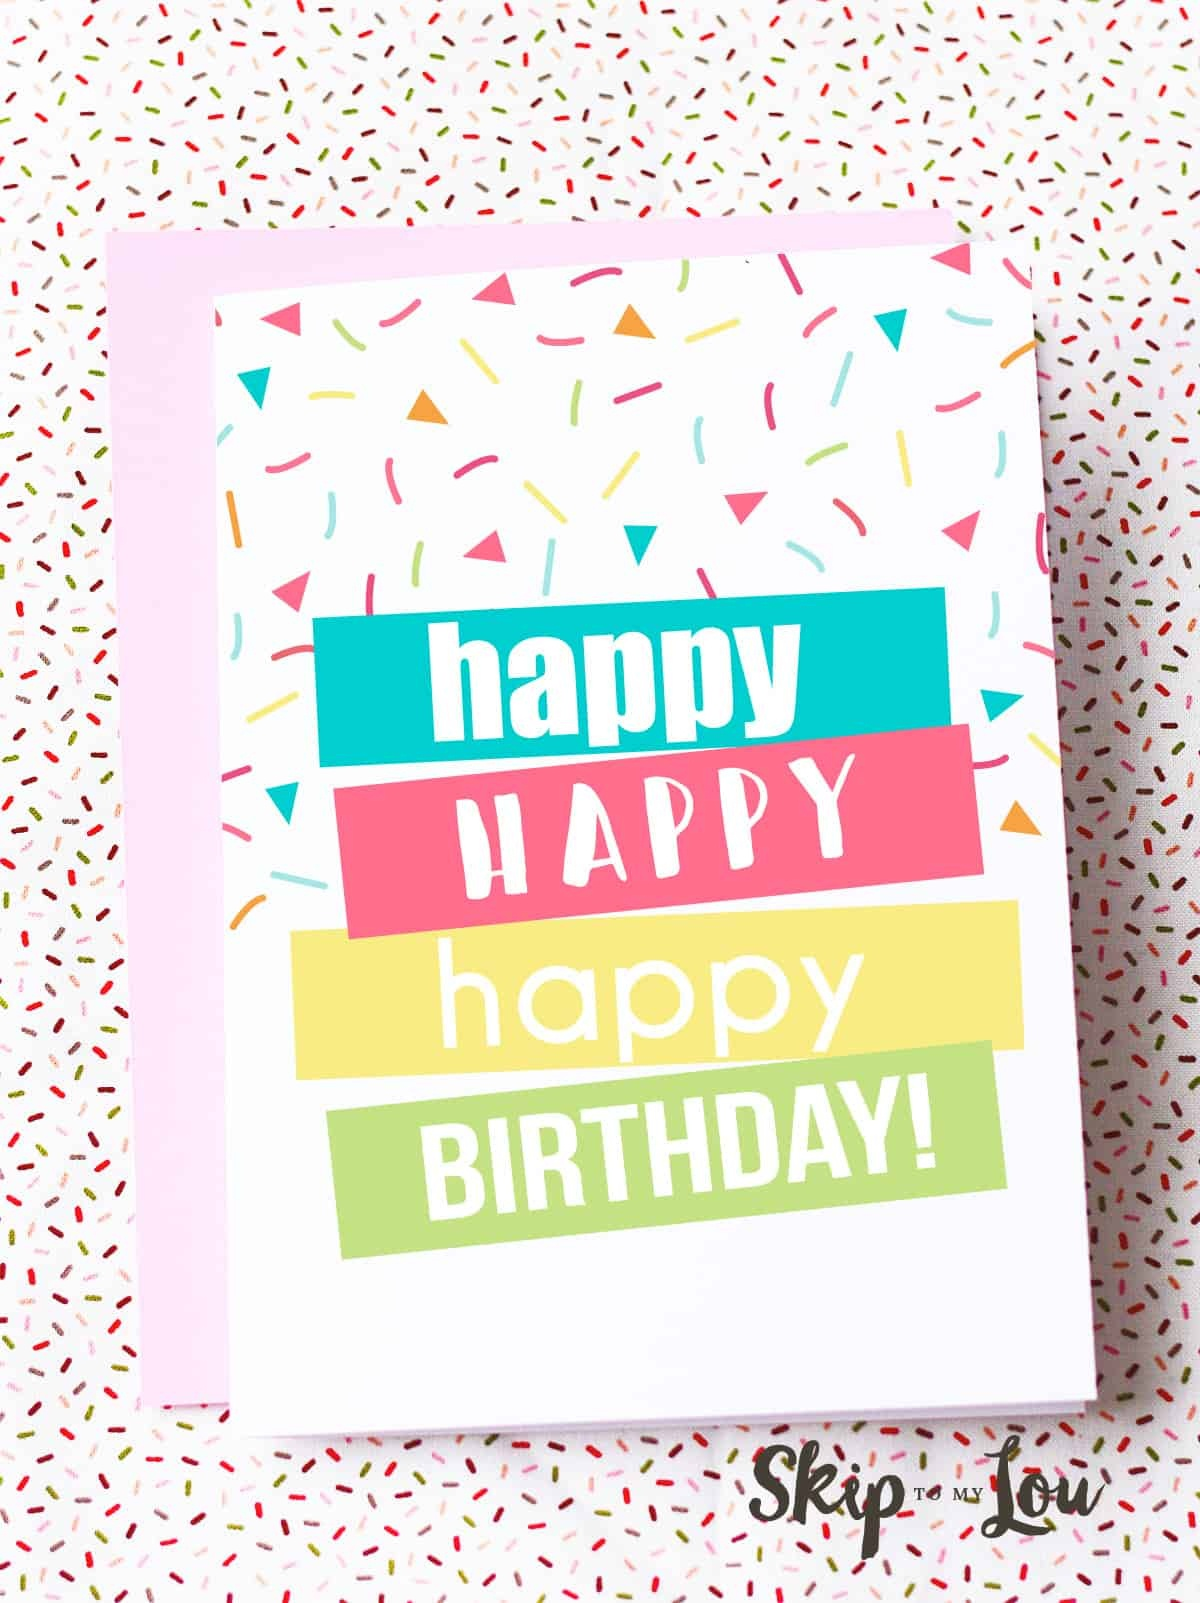 Free Printable Birthday Cards | Skip To My Lou - Happy Birthday Free Cards Printable